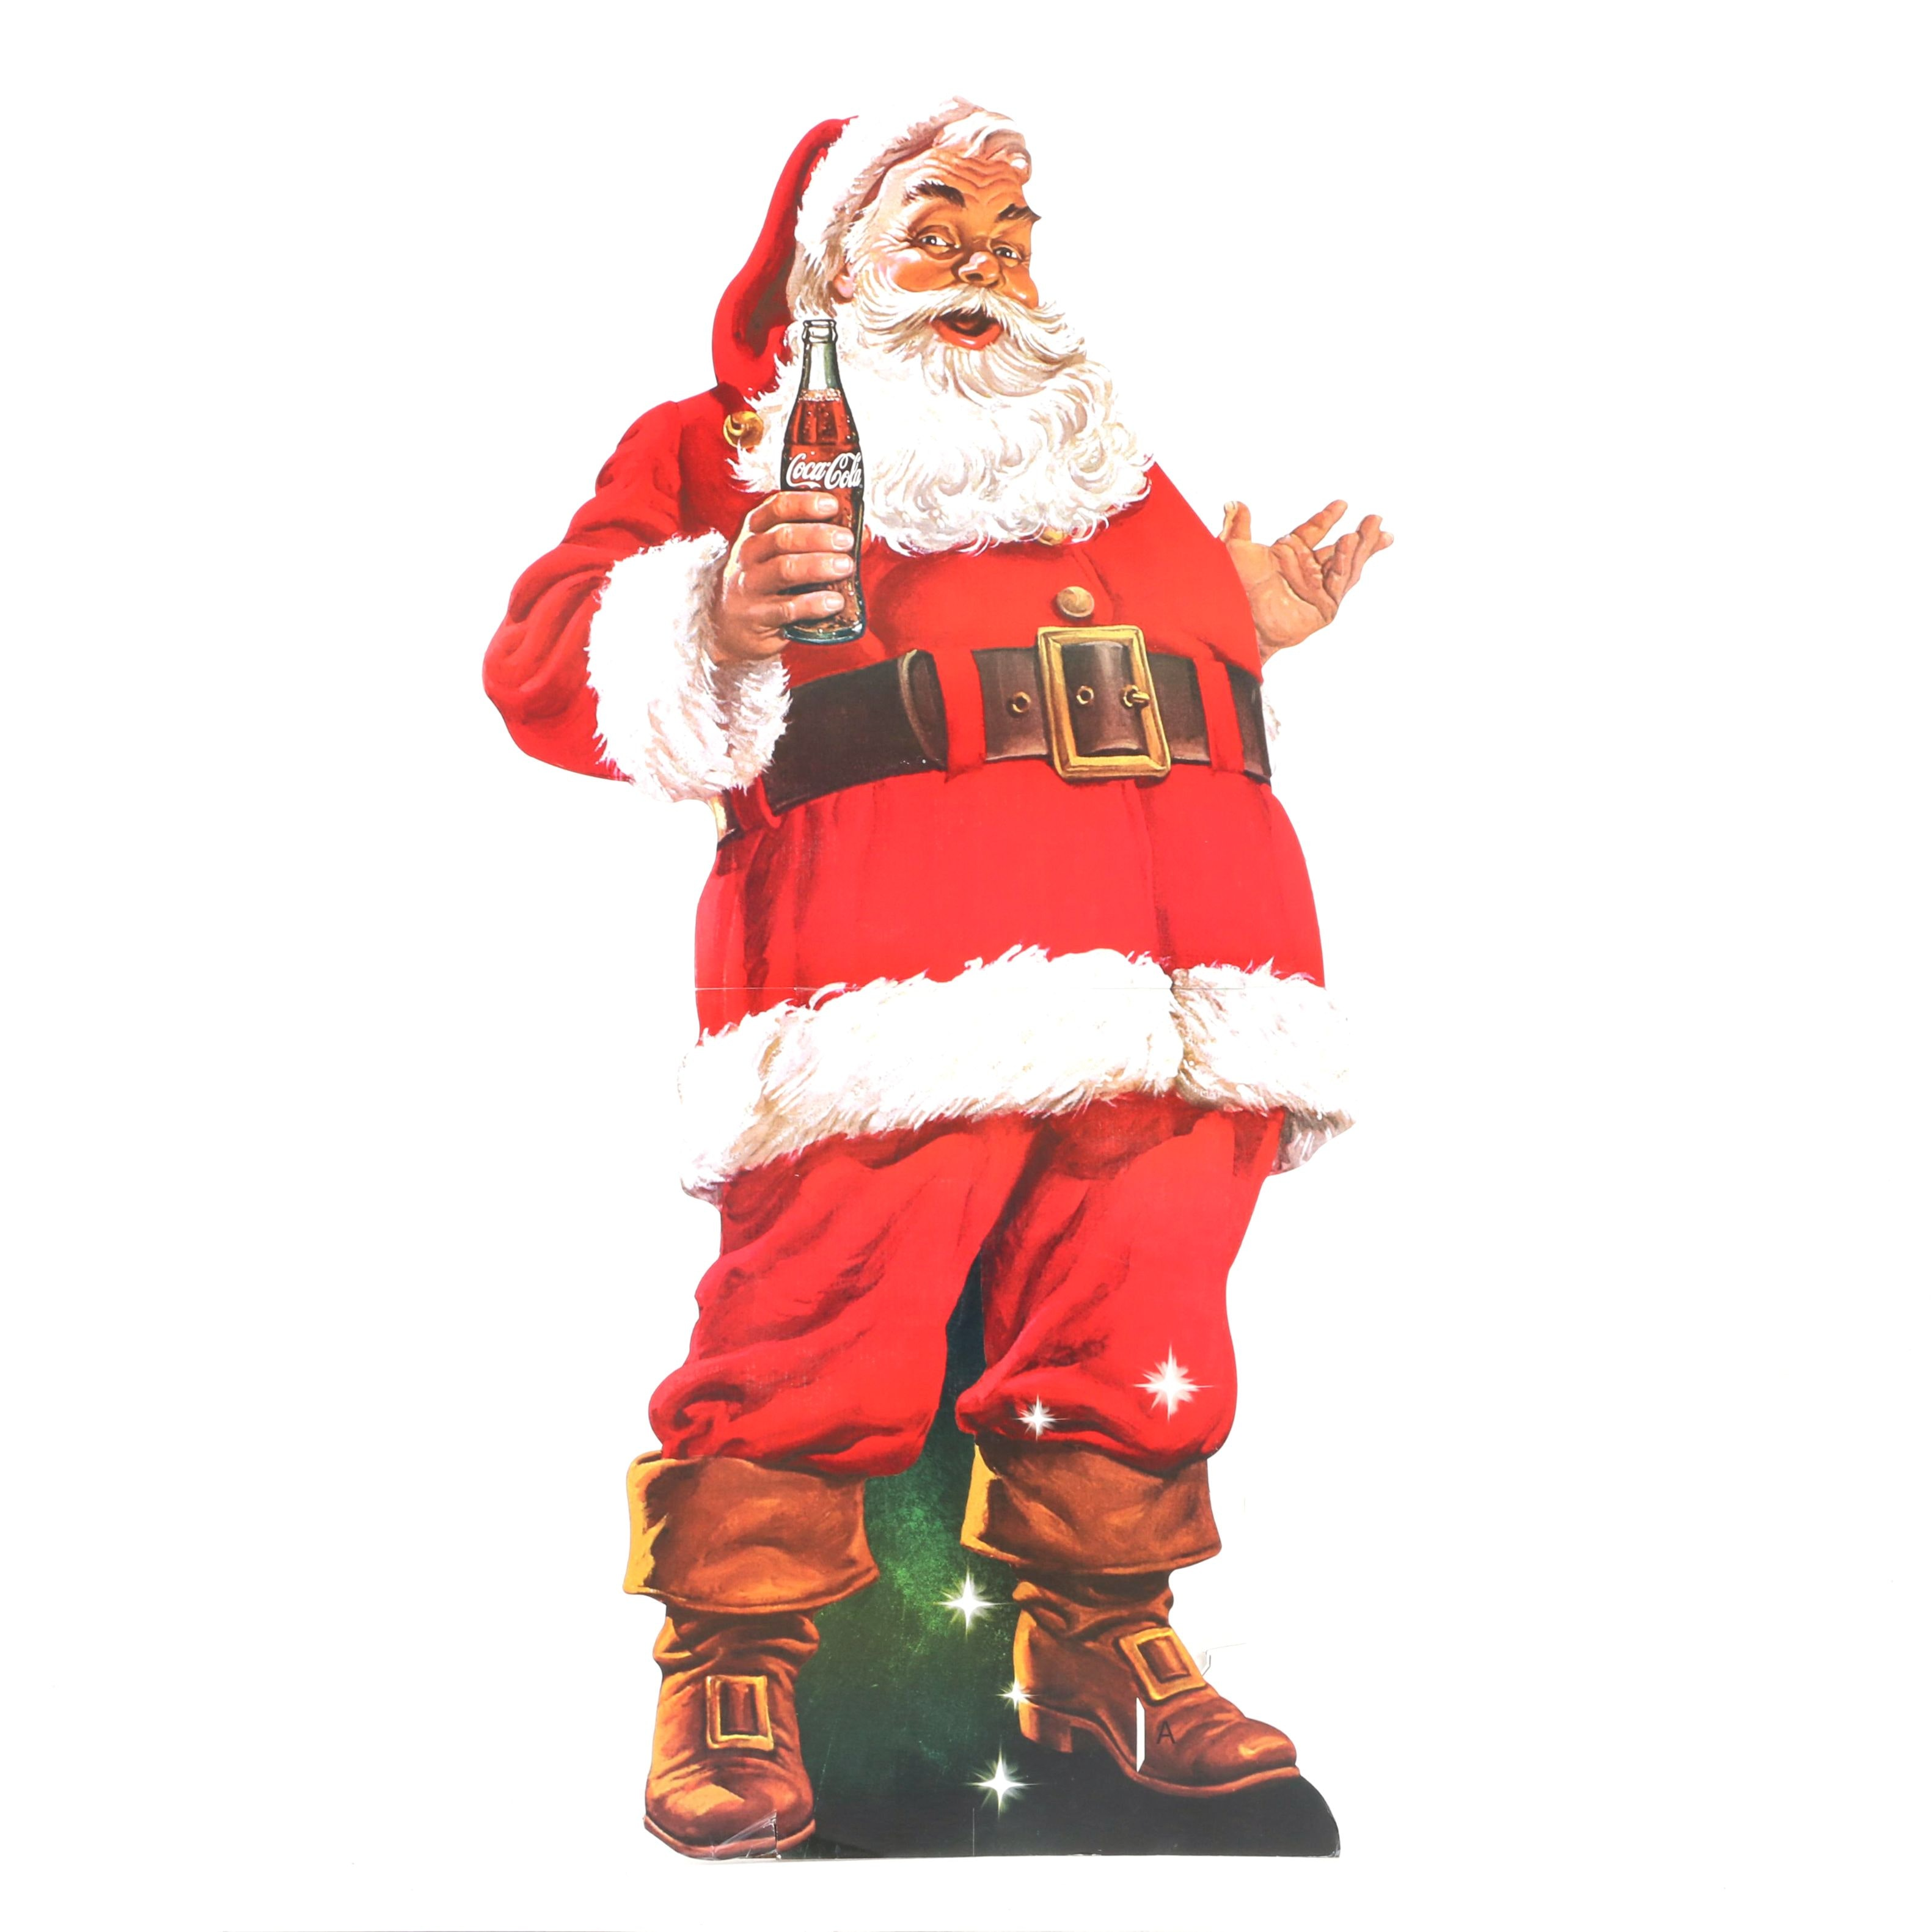 Full Sized Coca-Cola Santa Freestanding Cutout